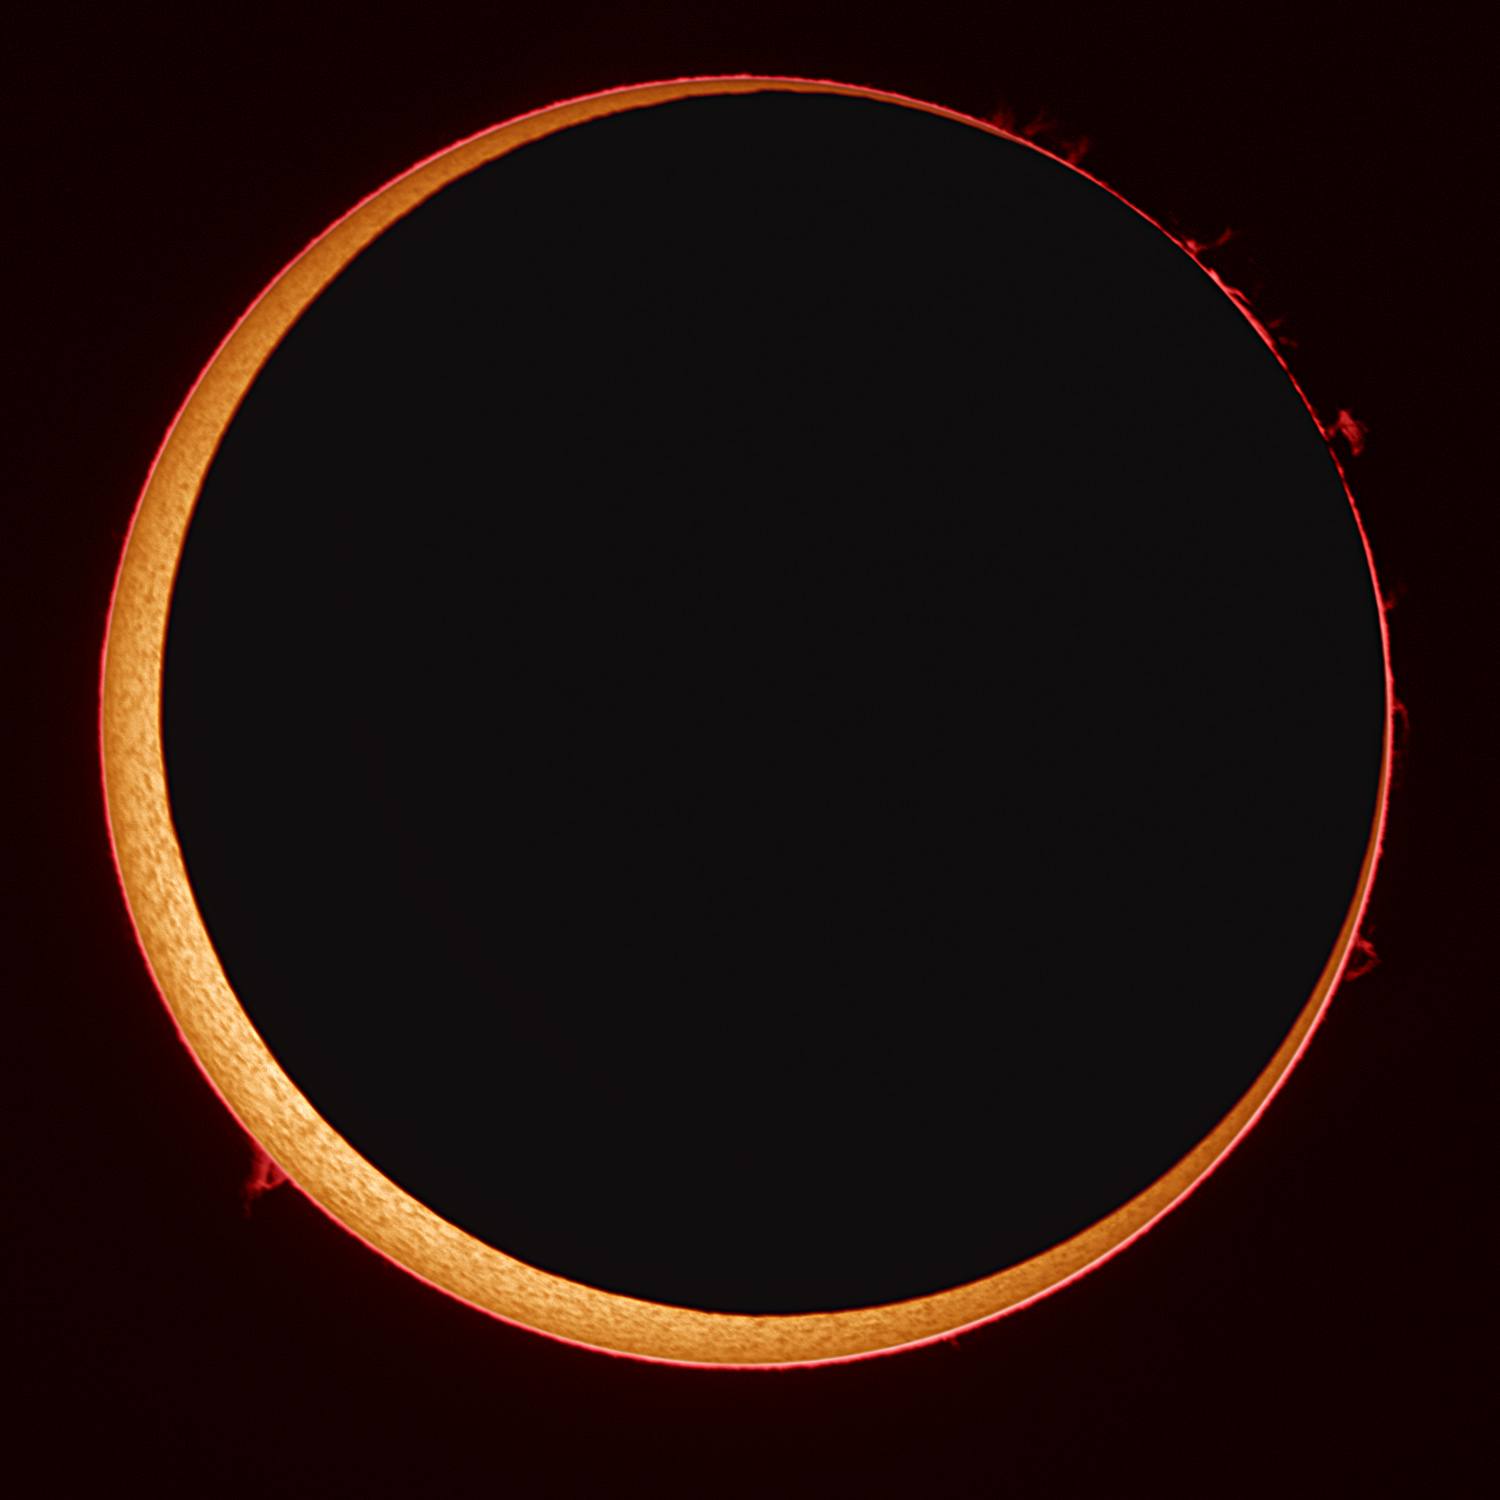 Solar Eclipse 2020: Annular Solar Eclipse Will Be Visible On June 21